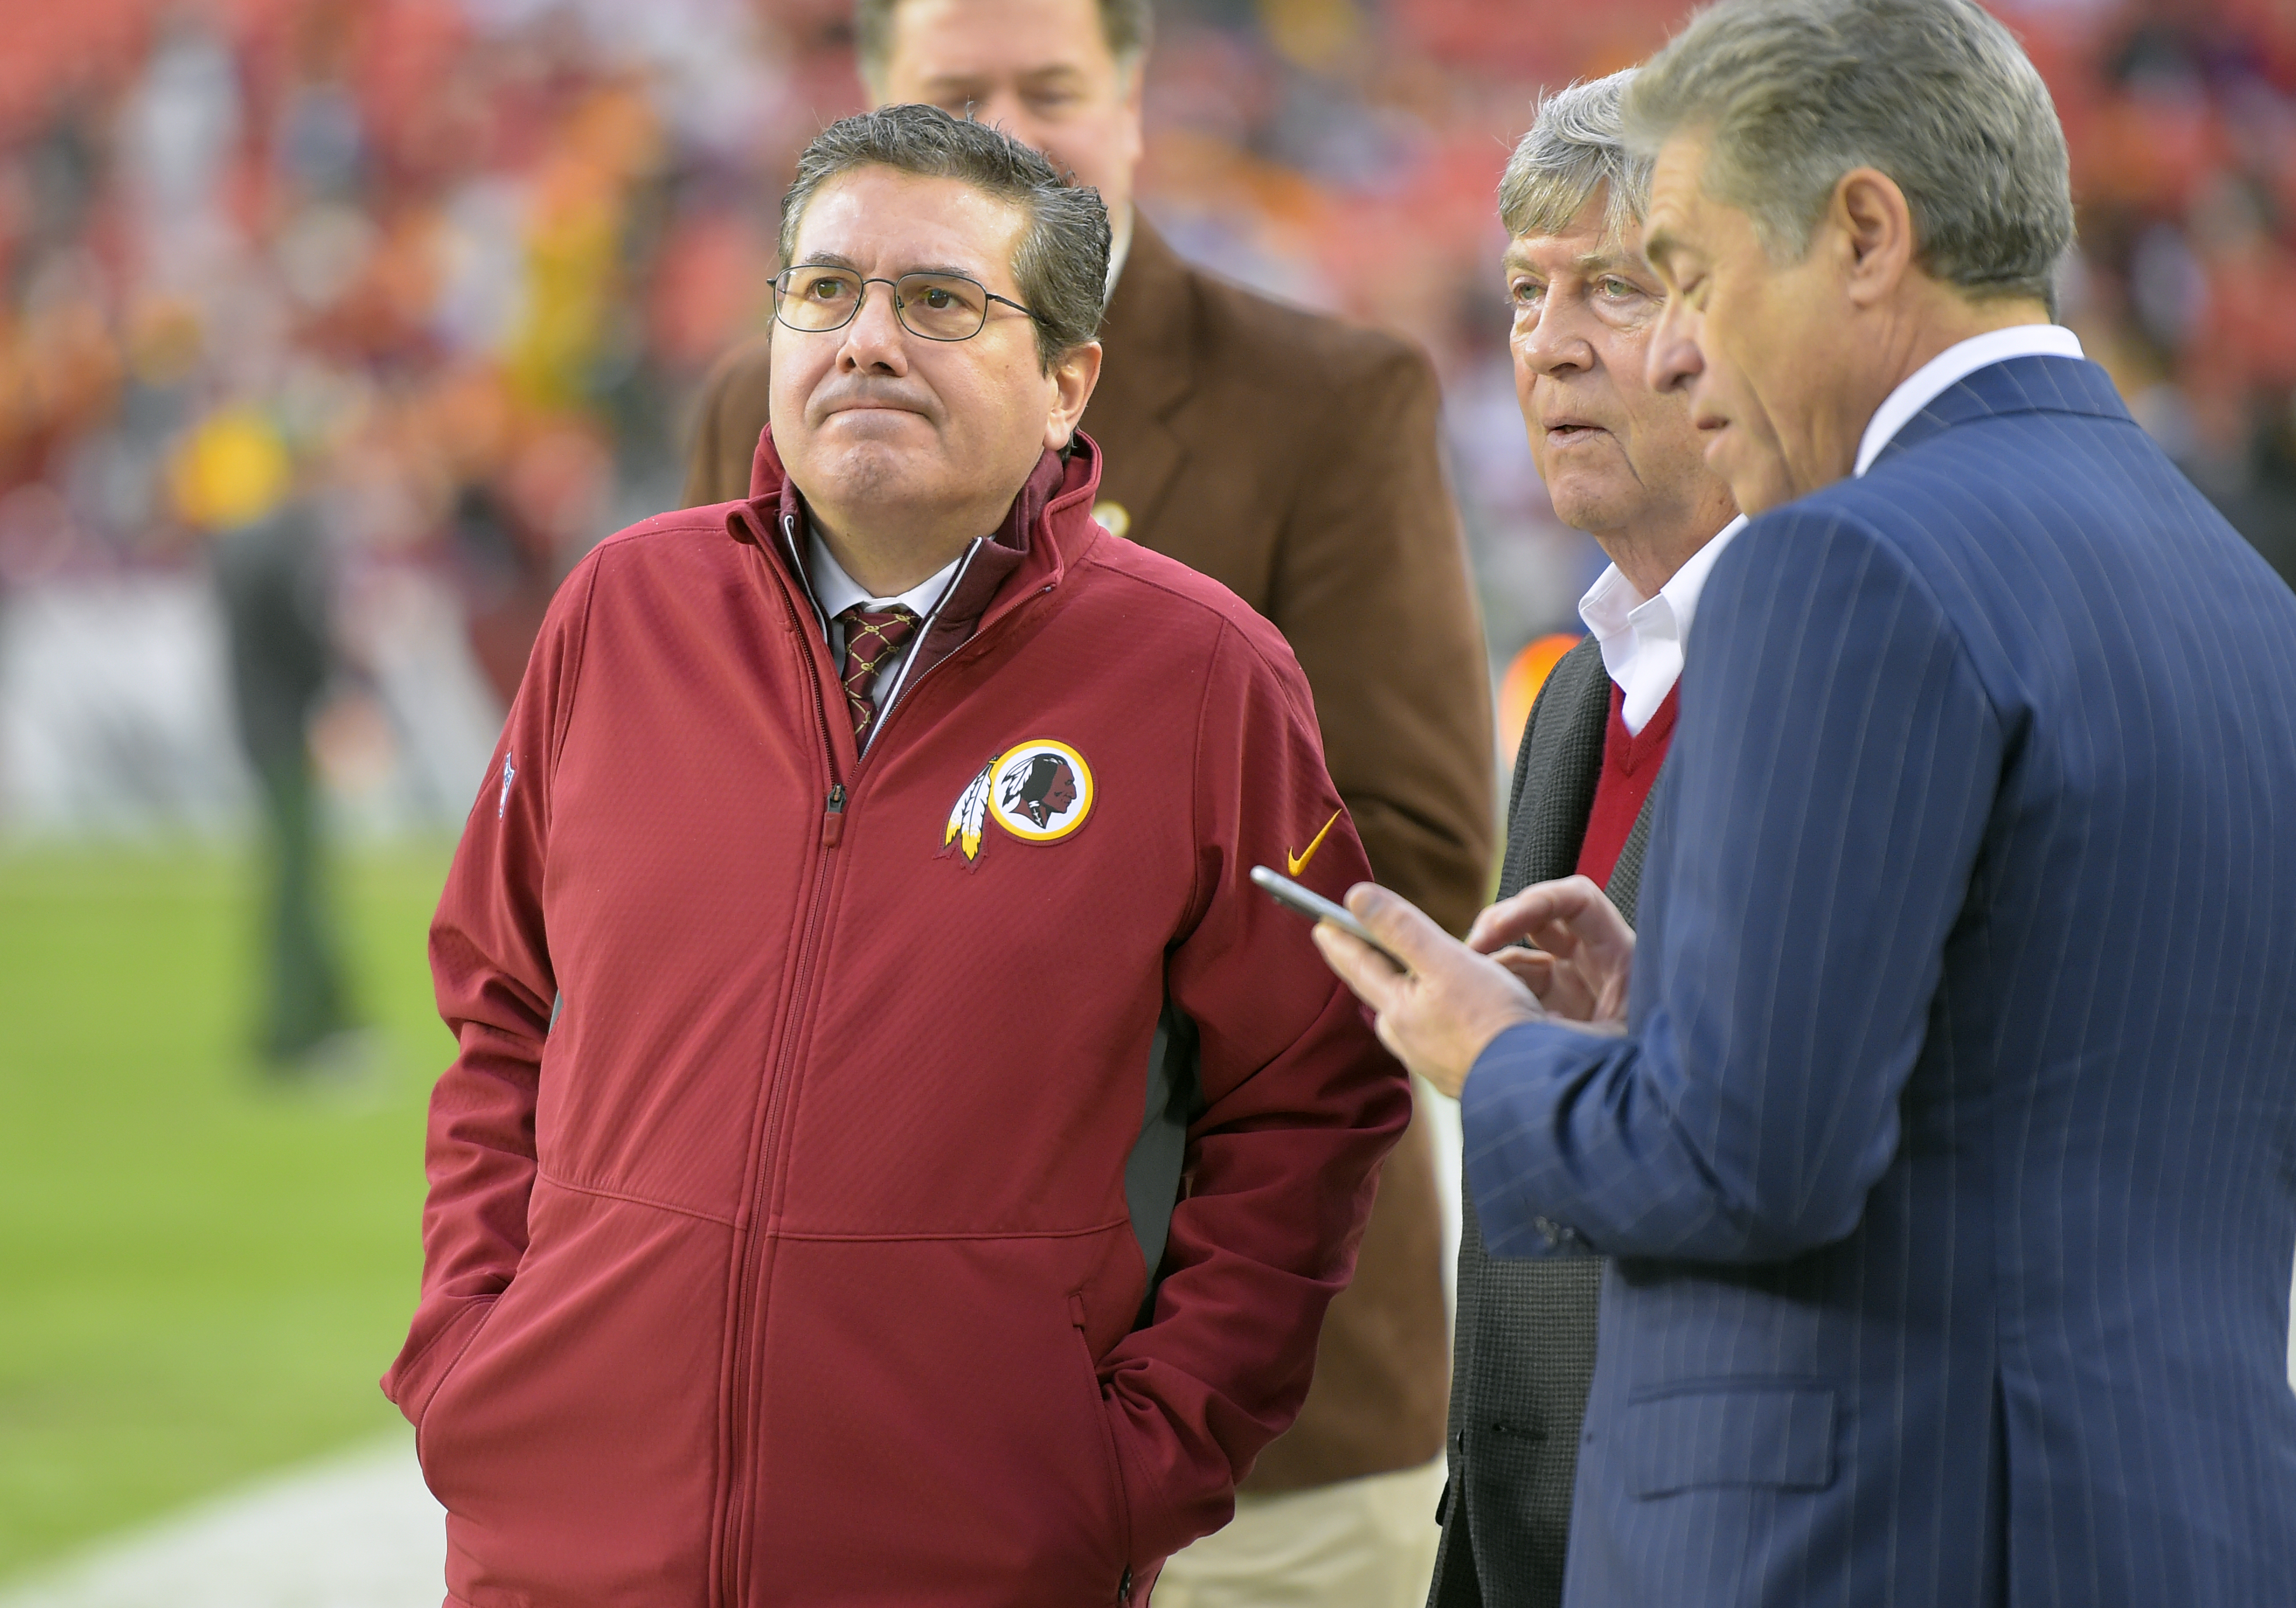 NFL Owners: Who Is the Best Businessperson? | Fortune